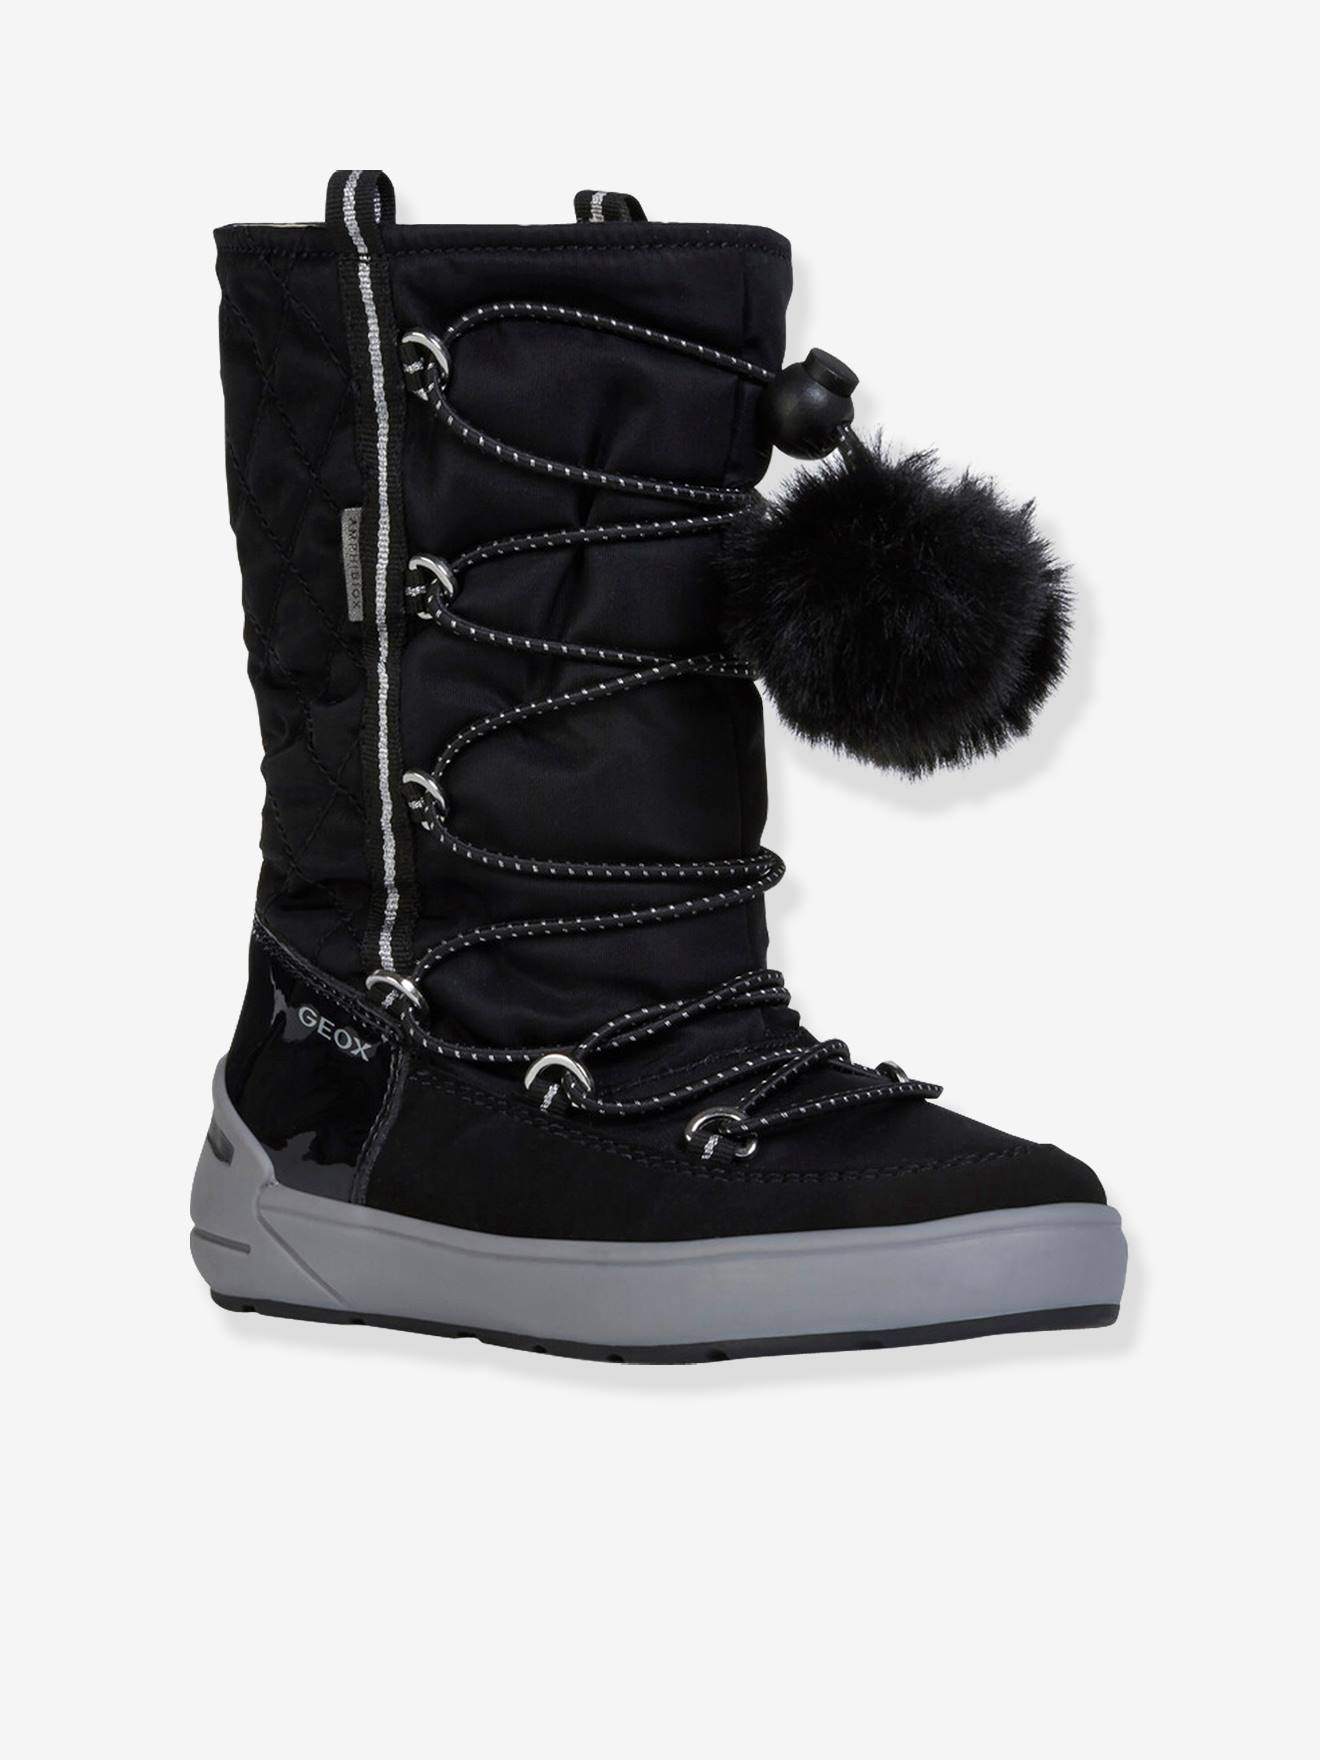 J Sleigh Girl B Abx Boots for Girls, by